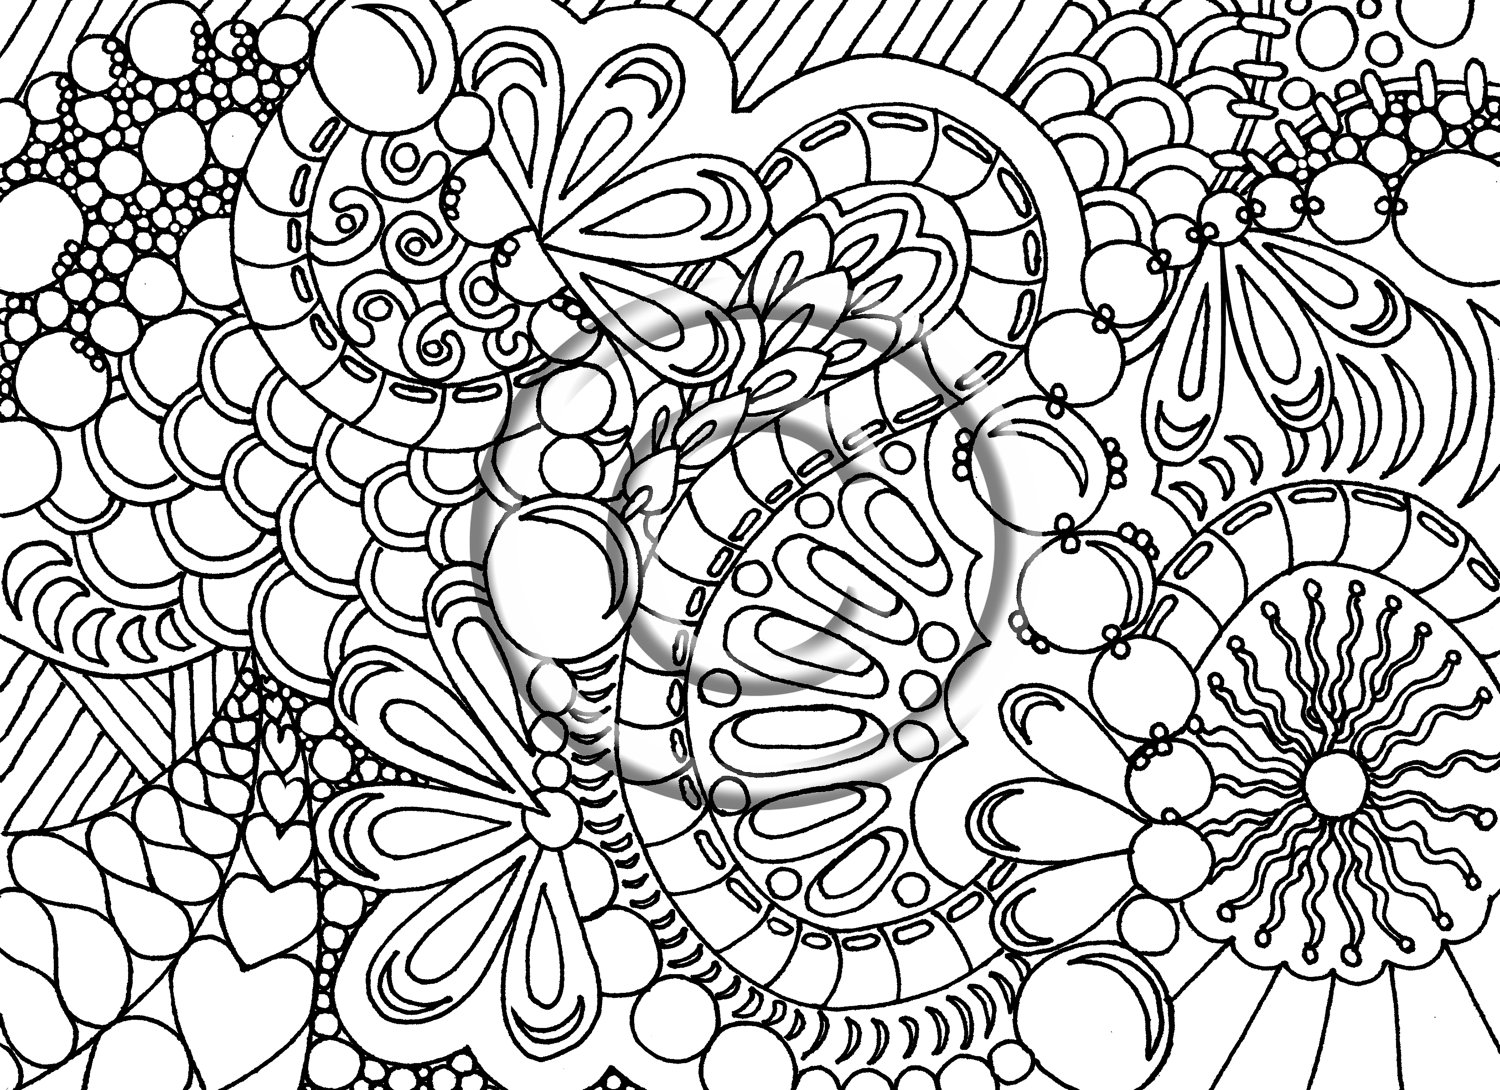 abstract coloring pages for kids abstract coloring pages free printable momjunction abstract pages coloring for kids